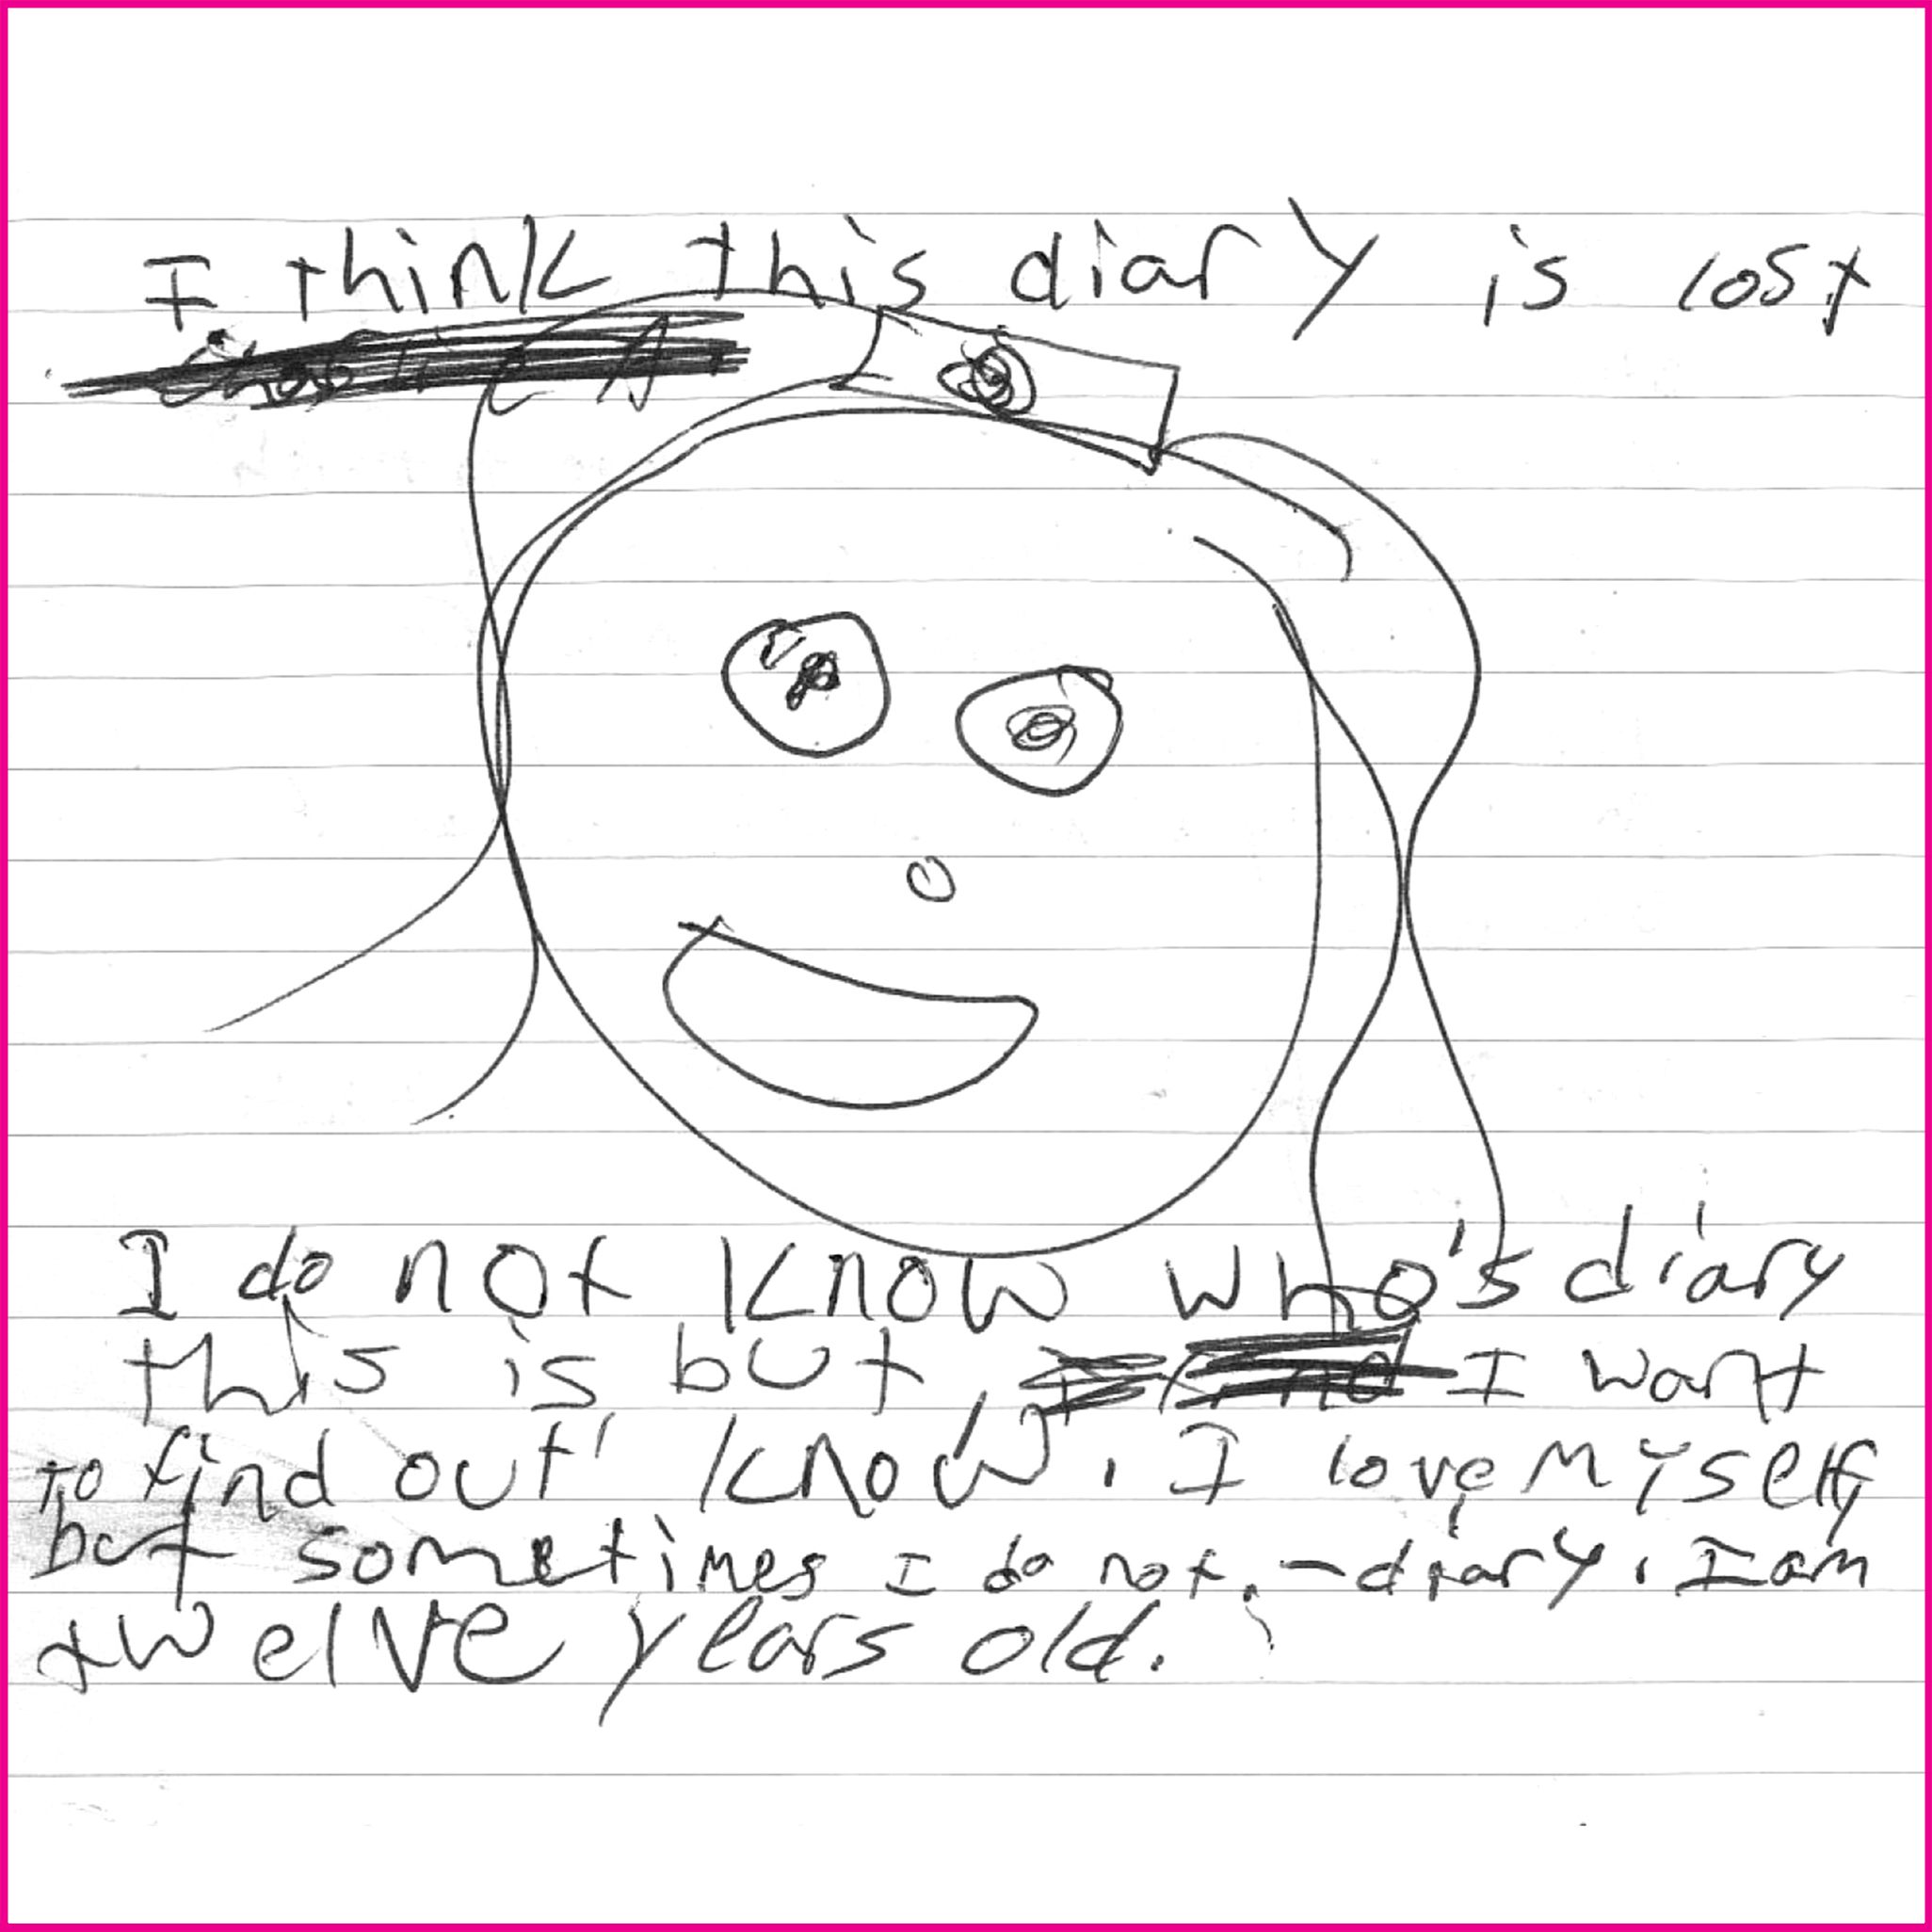 I think this diary is lost. I do not know who's diary this is but I want to find out! I love myself but sometimes I do not. - diary  I am twelve years old.  I think it's a good idea.